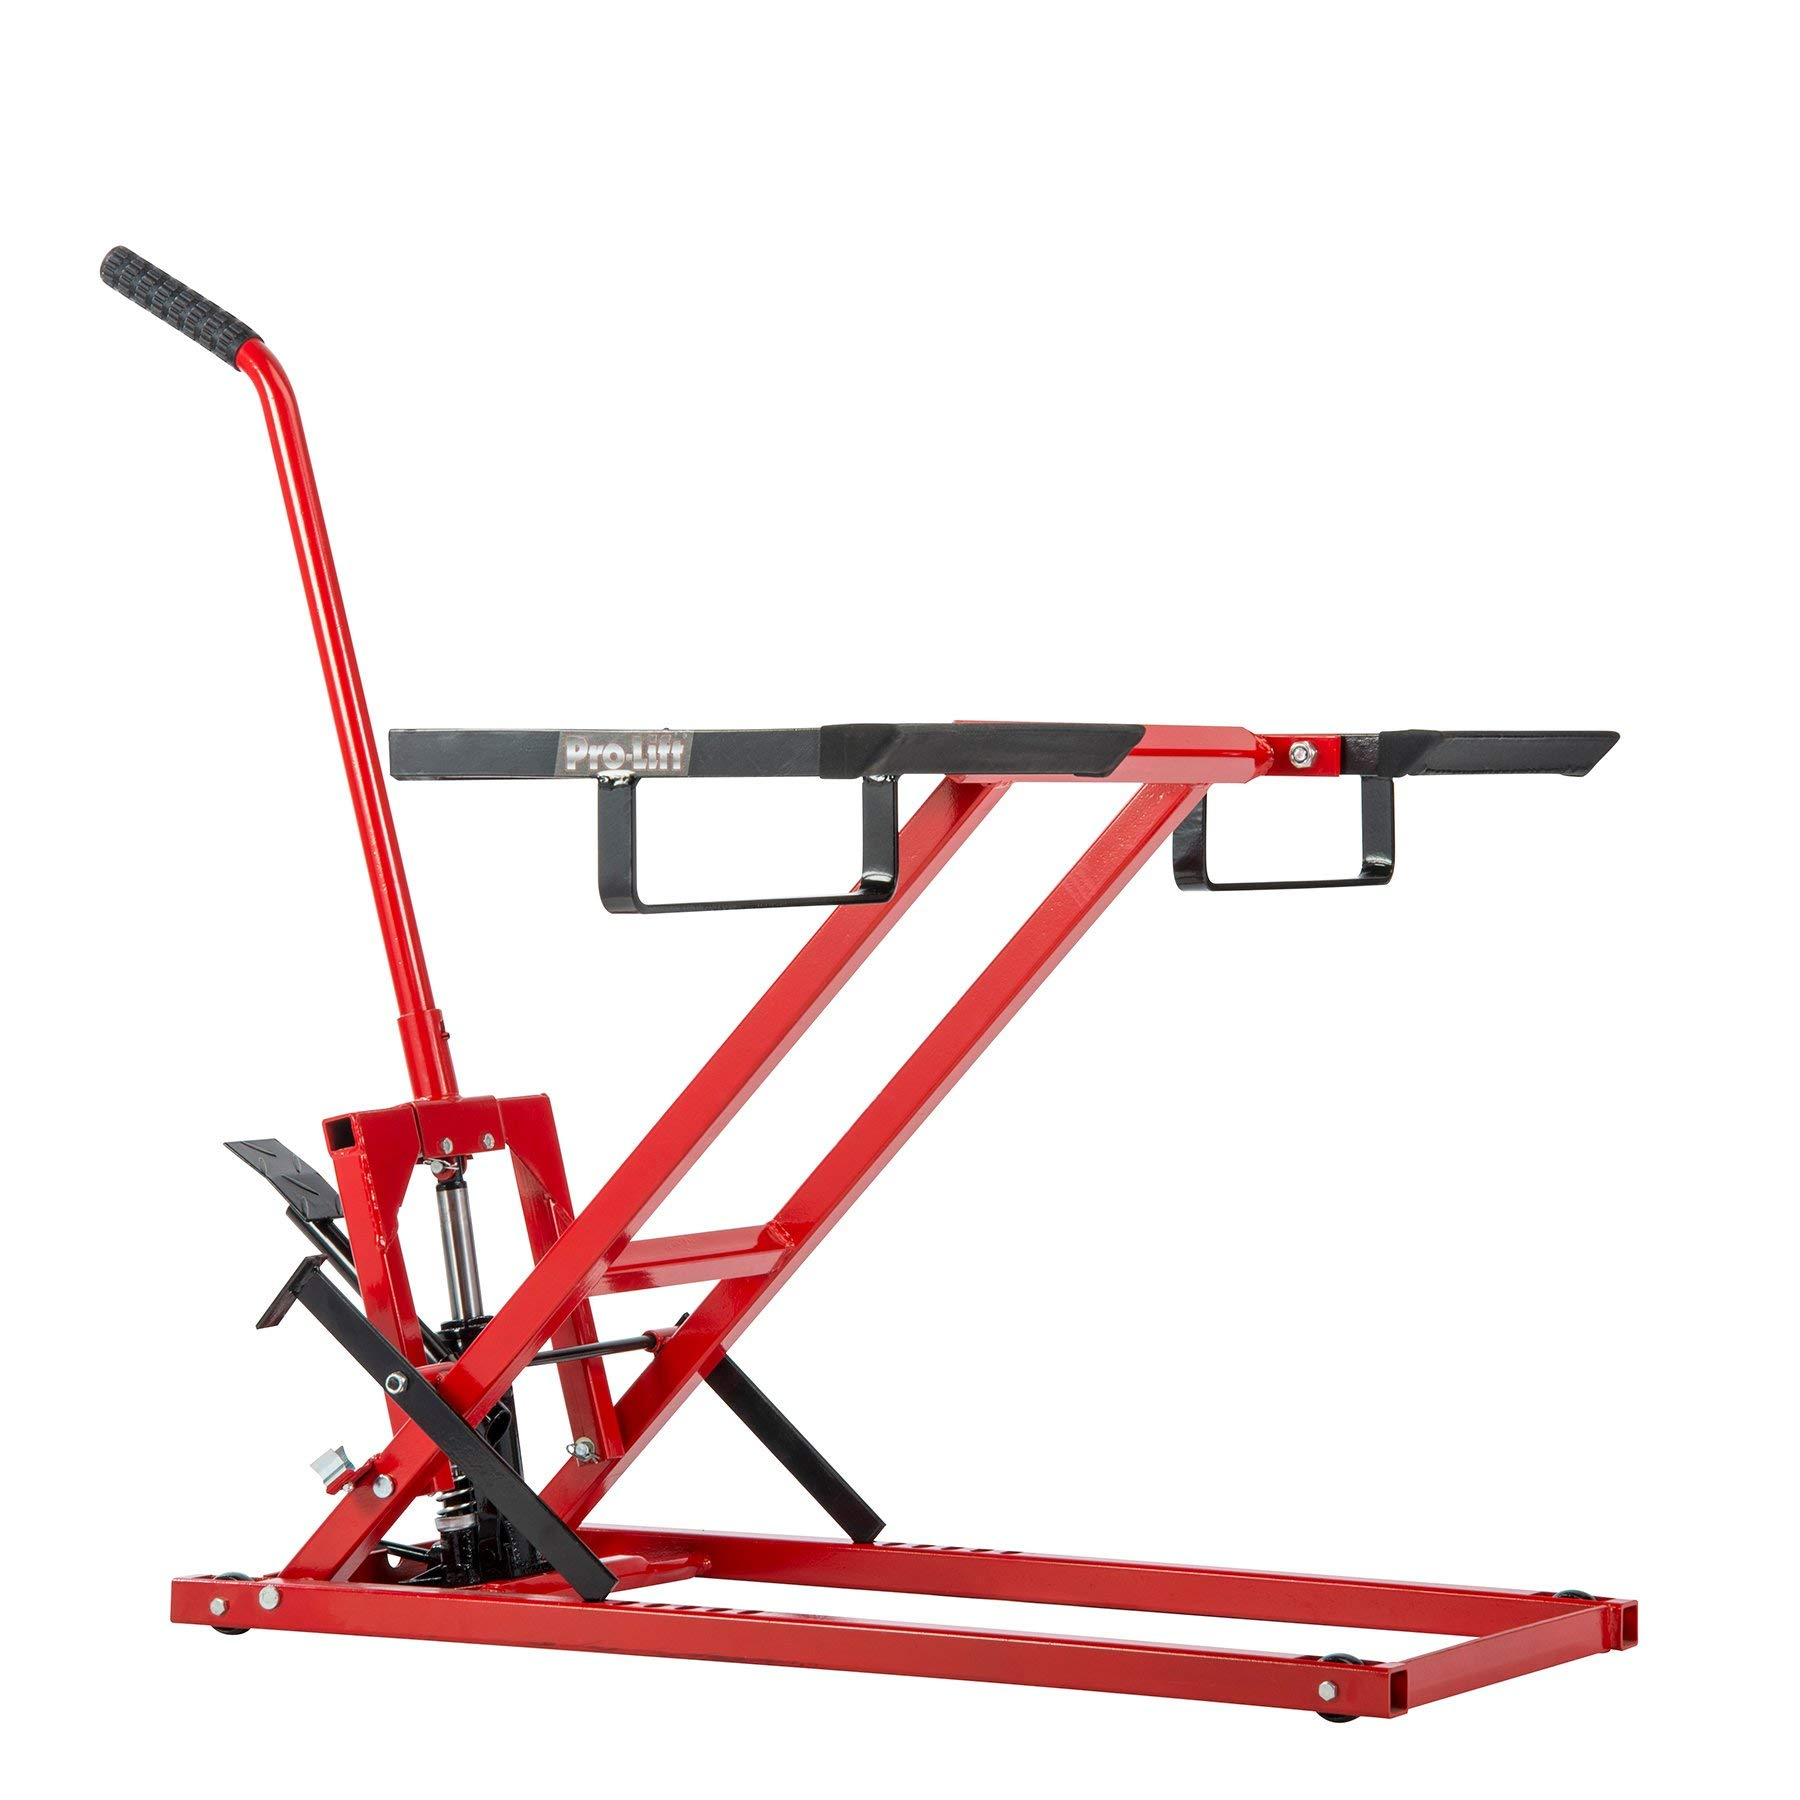 Pro Lift Lawn Mower Jack Lift with 300 Lbs Capacity for Tractors and Zero Turn Lawn Mowers (Renewed) by Pro-LifT